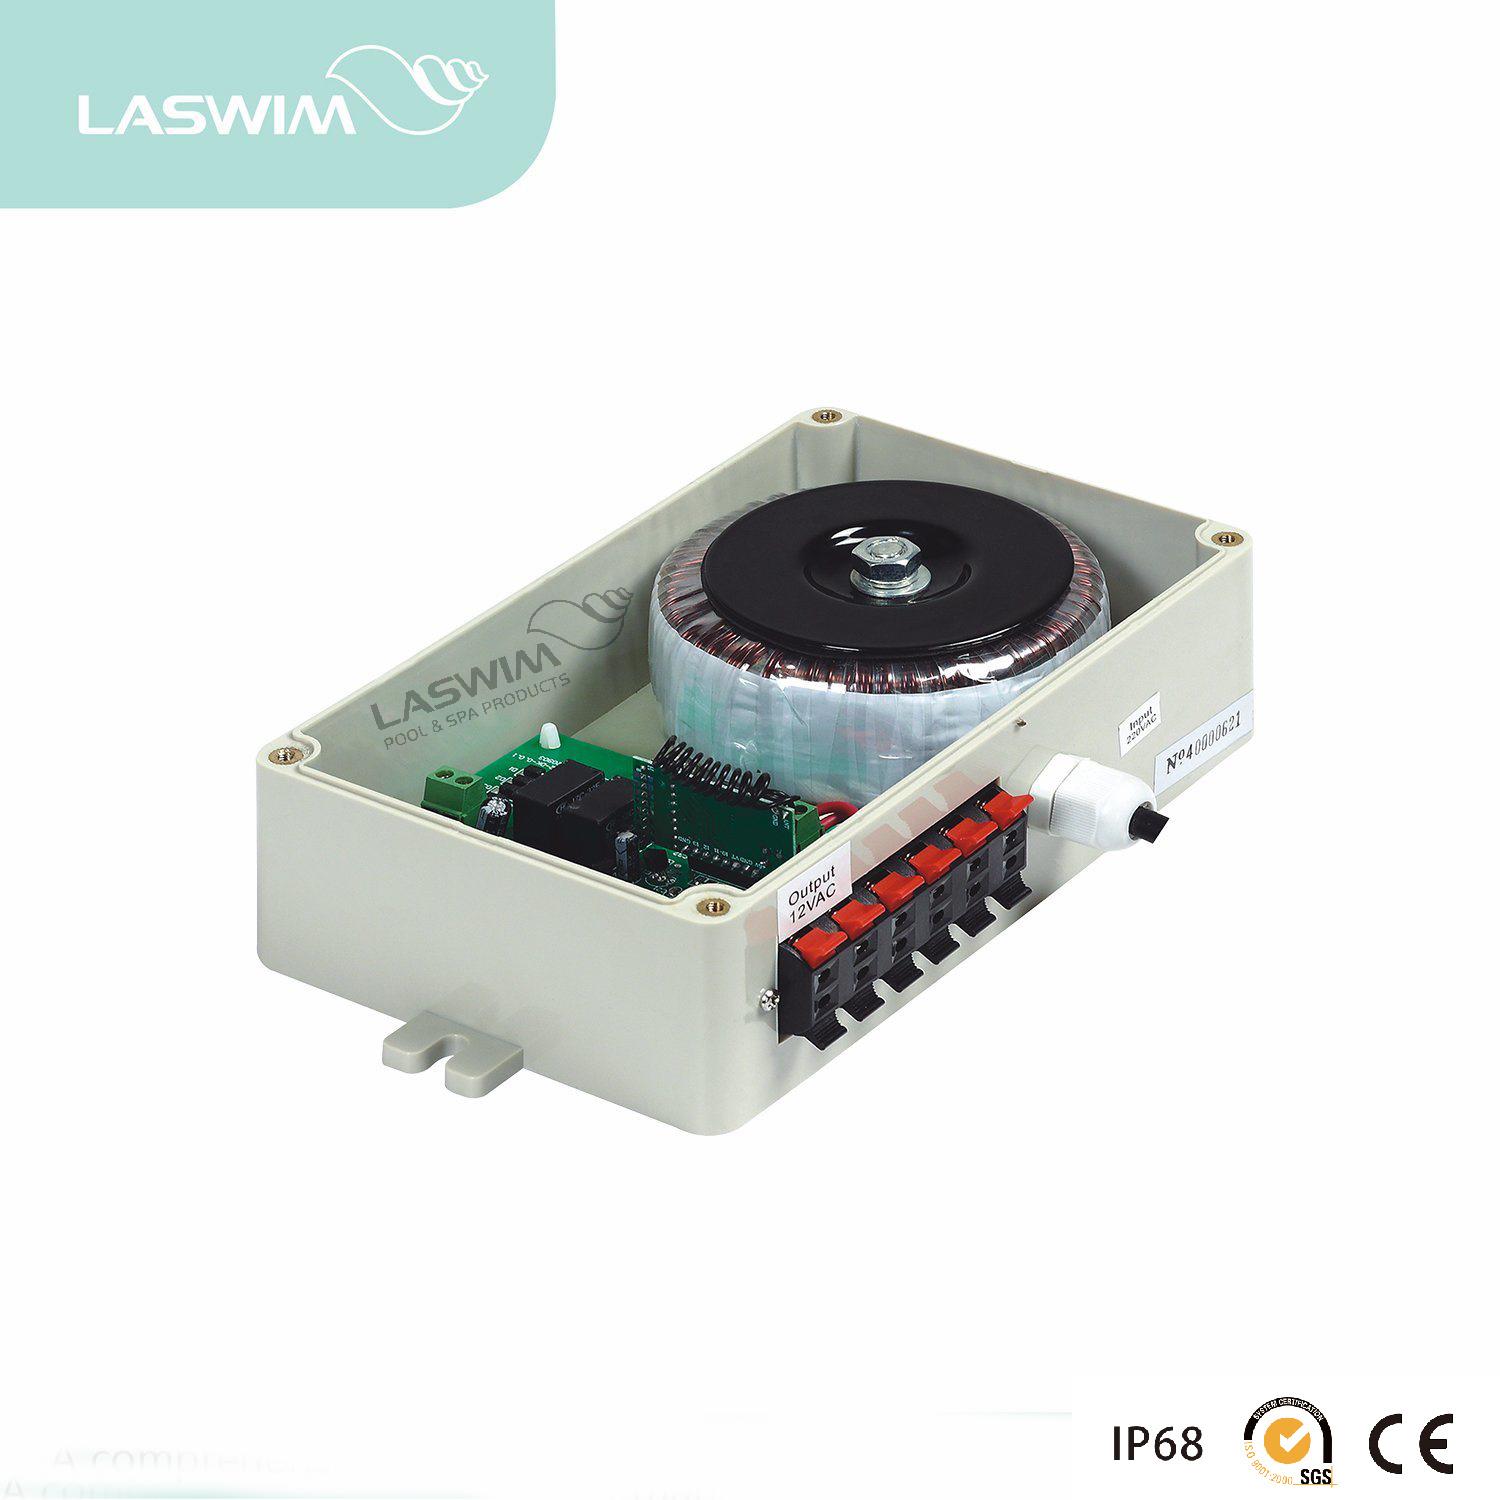 [Hot Item] Laswim Swimming Pool LED Underwater Light Remote Controller Box